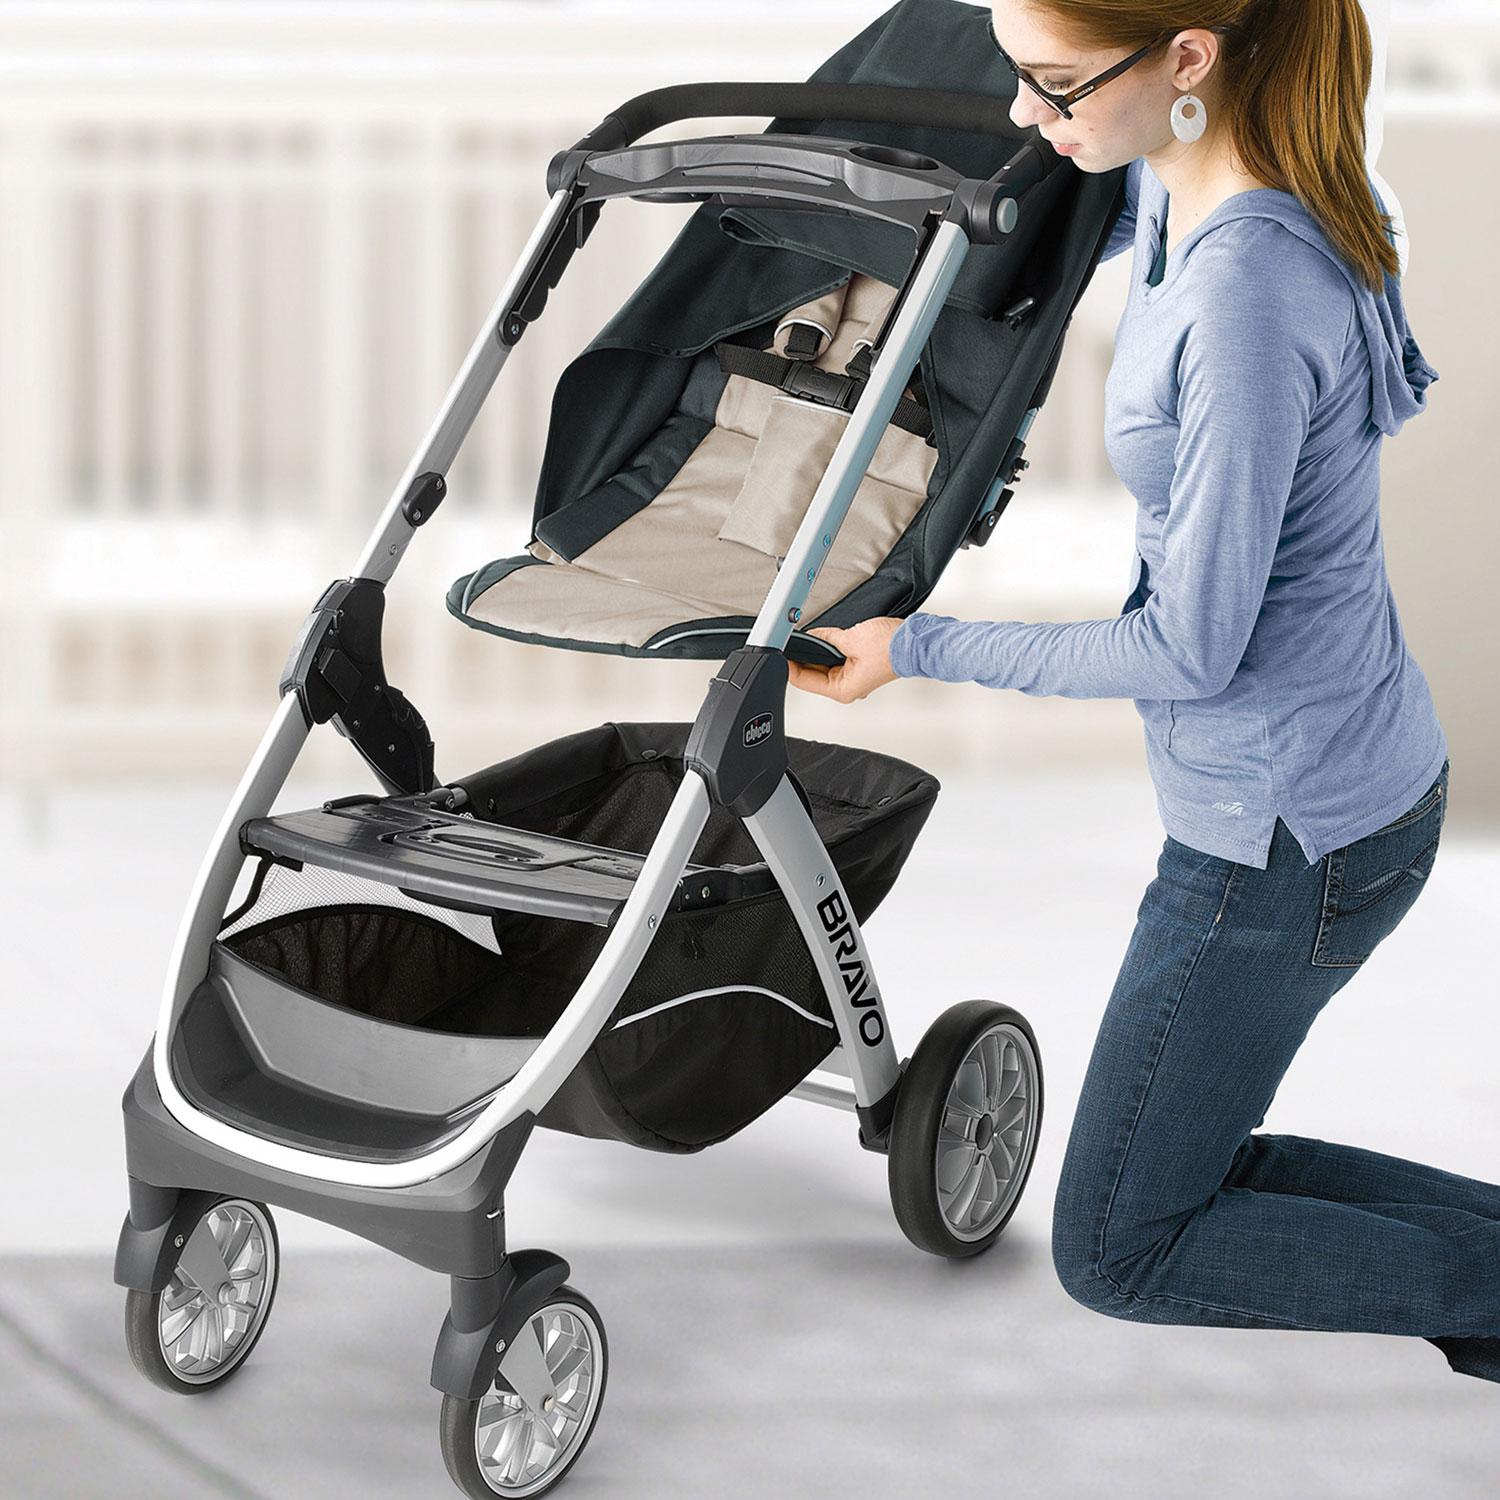 stroller buying guide - chicco bravo putting on seat